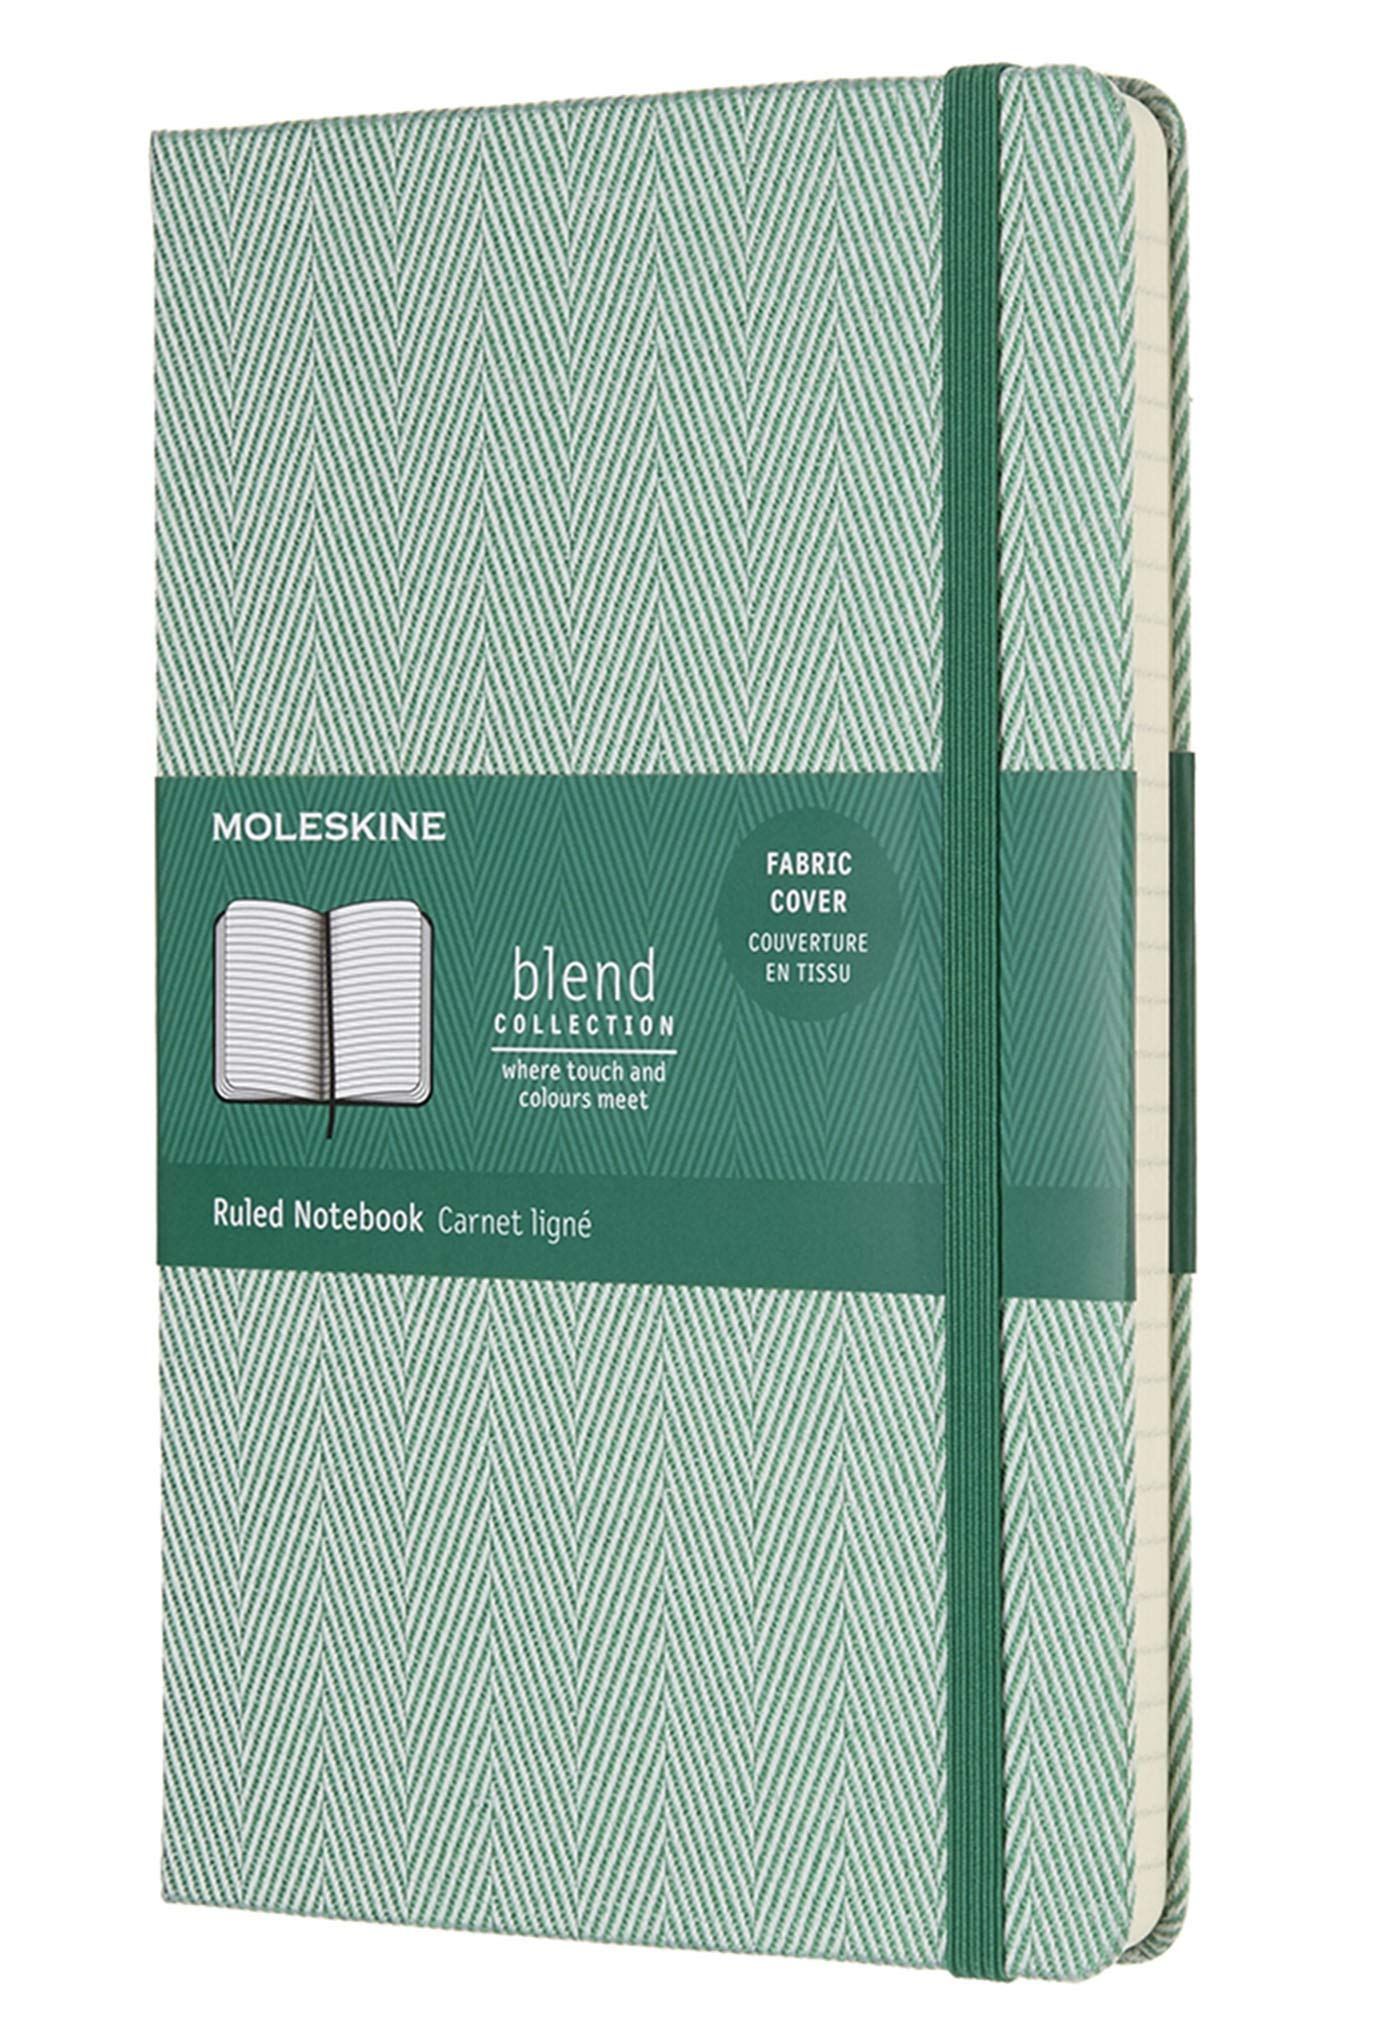 Moleskine Limited Edition Blend Collection Notebook Large Ruled Green (8055002856003) by Moleskine